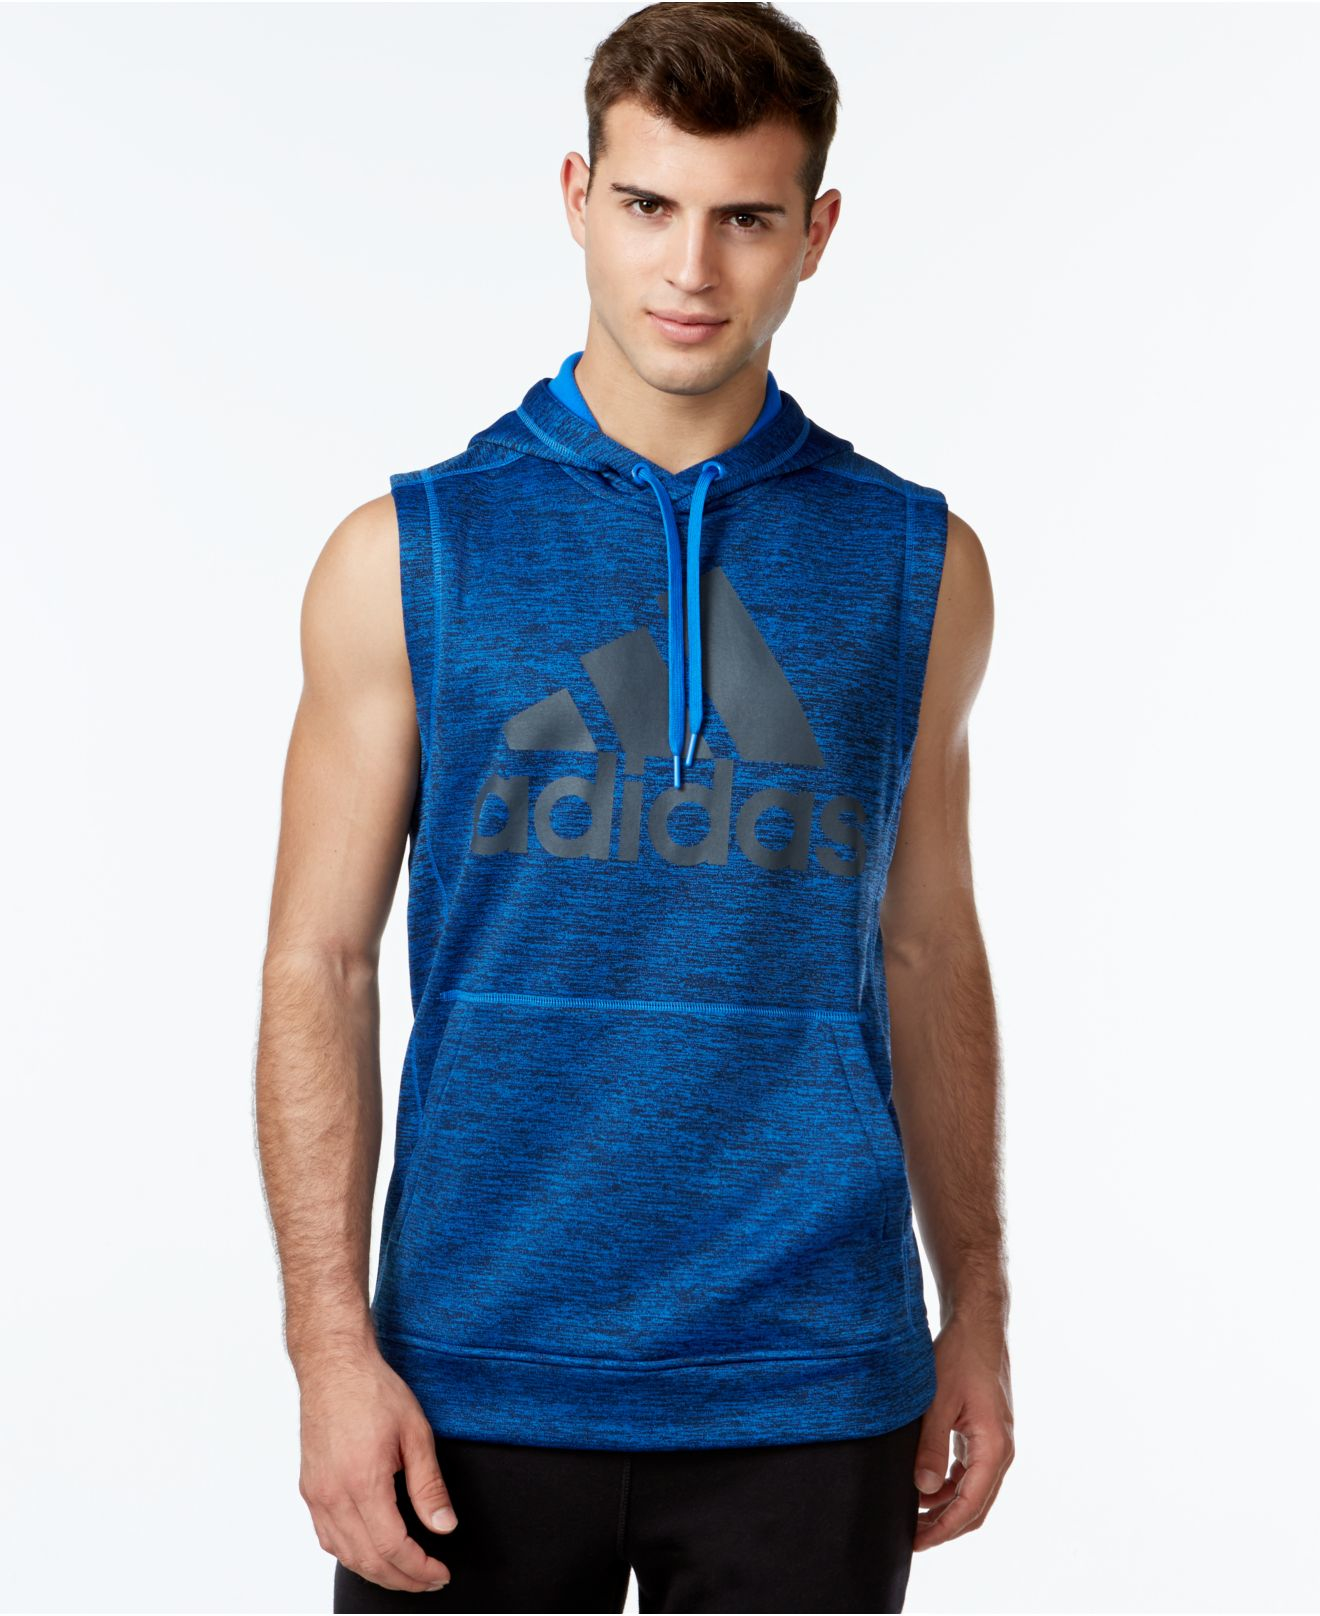 Yogue Activewear brings you stylish sleeveless hoodie to flaunt those guns you have been working hard on. Cover your head in those change of seasons of periods right after coming out of the gym.